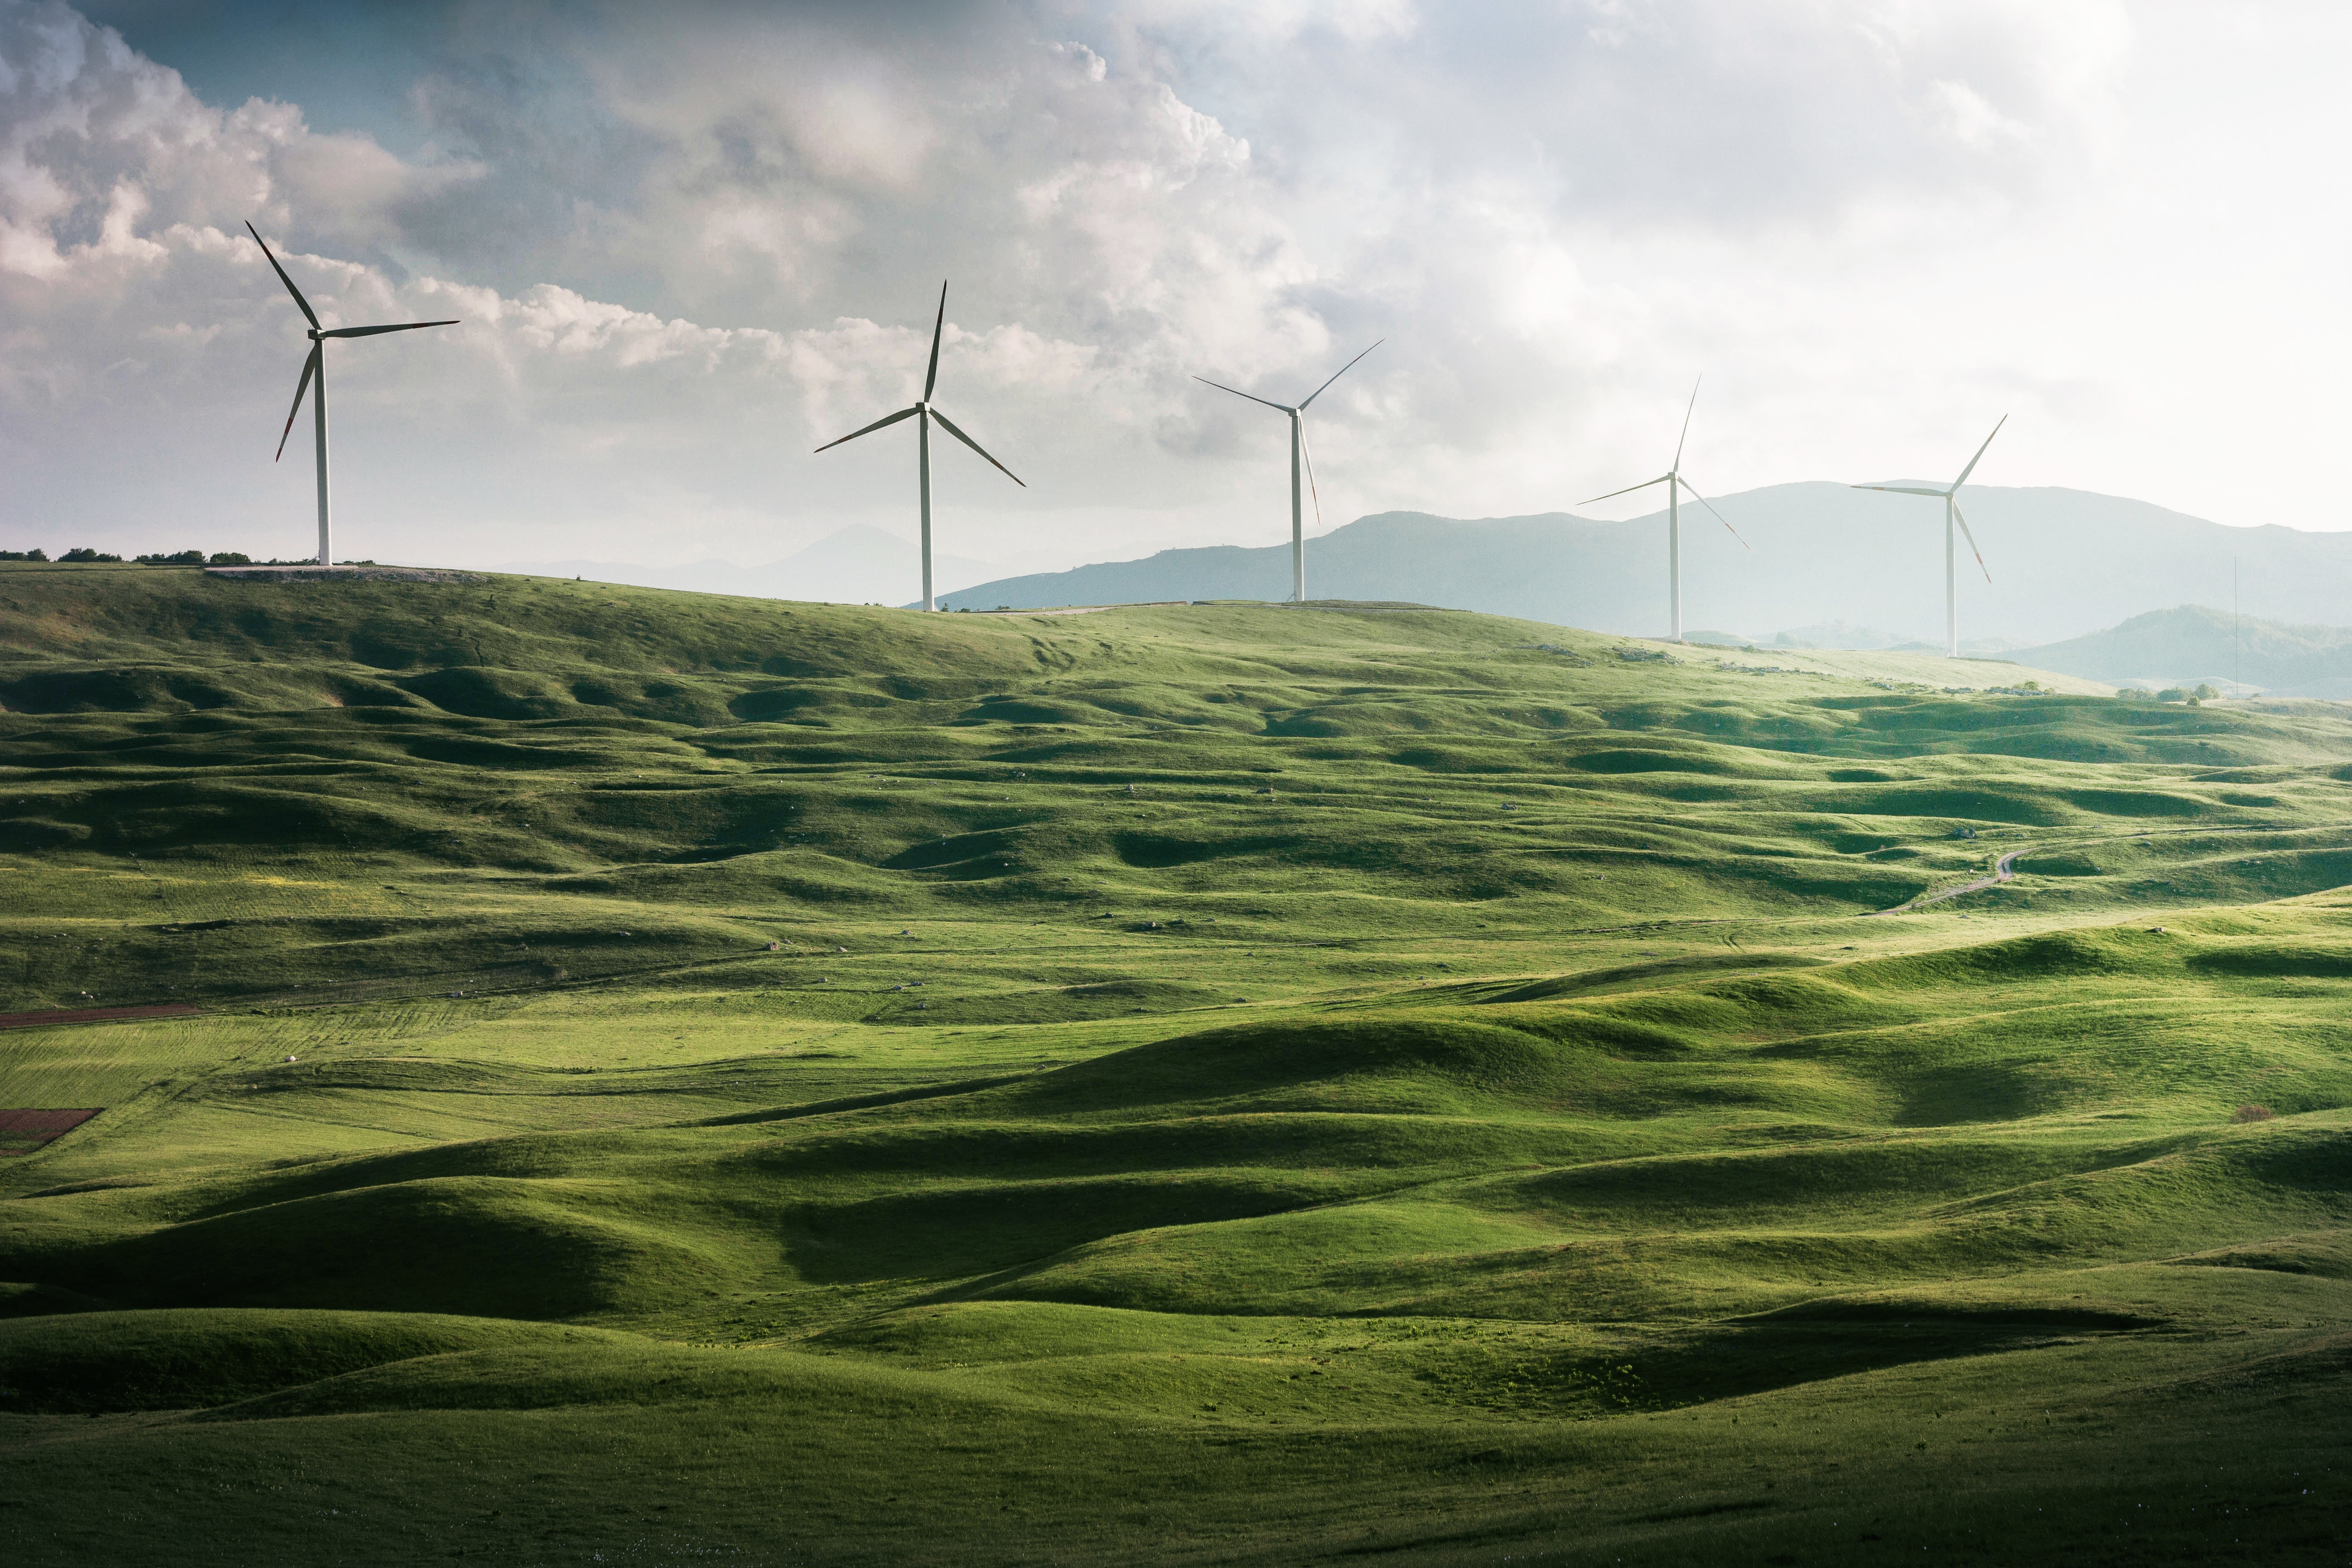 New report claims energy transition challenged by economic inequality